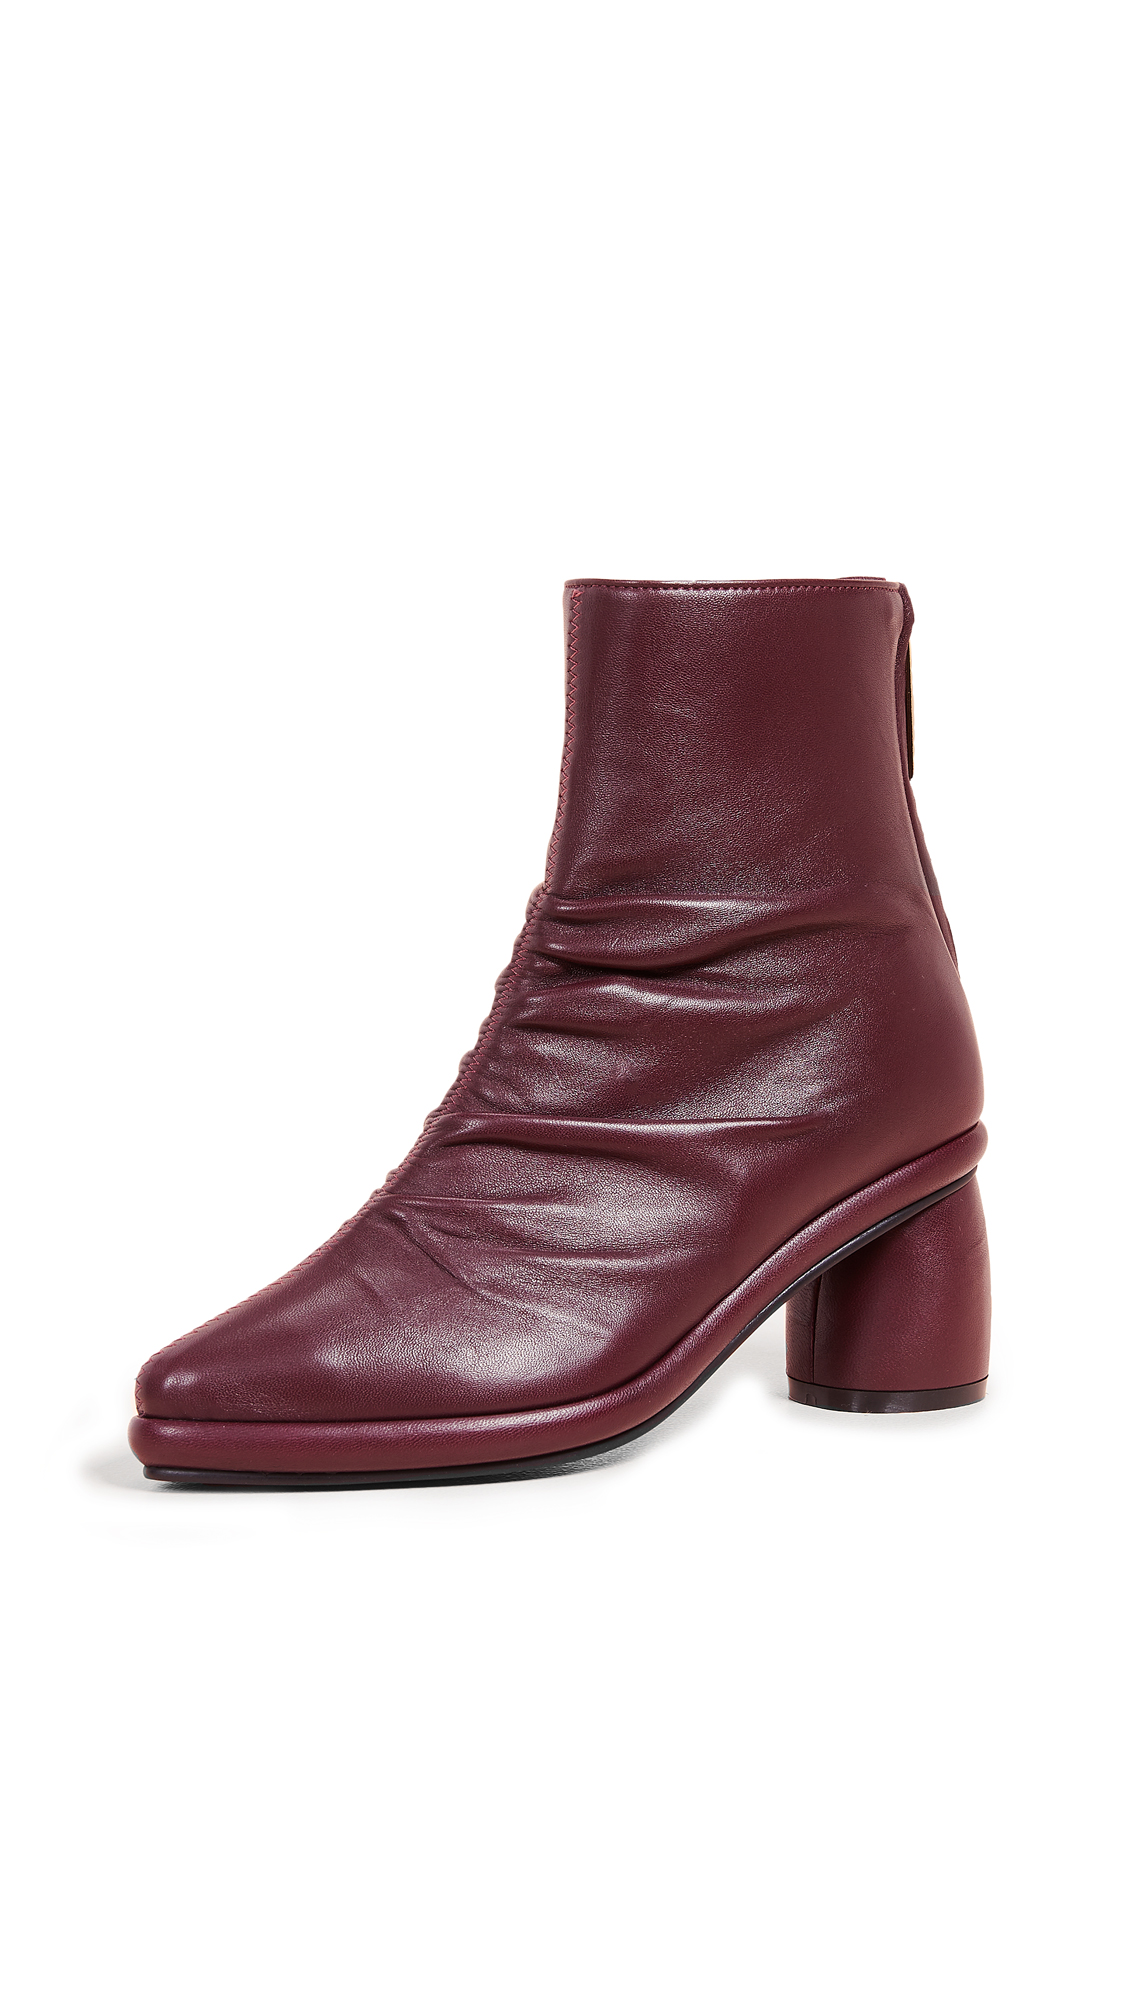 Reike Nen Shirring Middle Ankle Booties - Burgundy